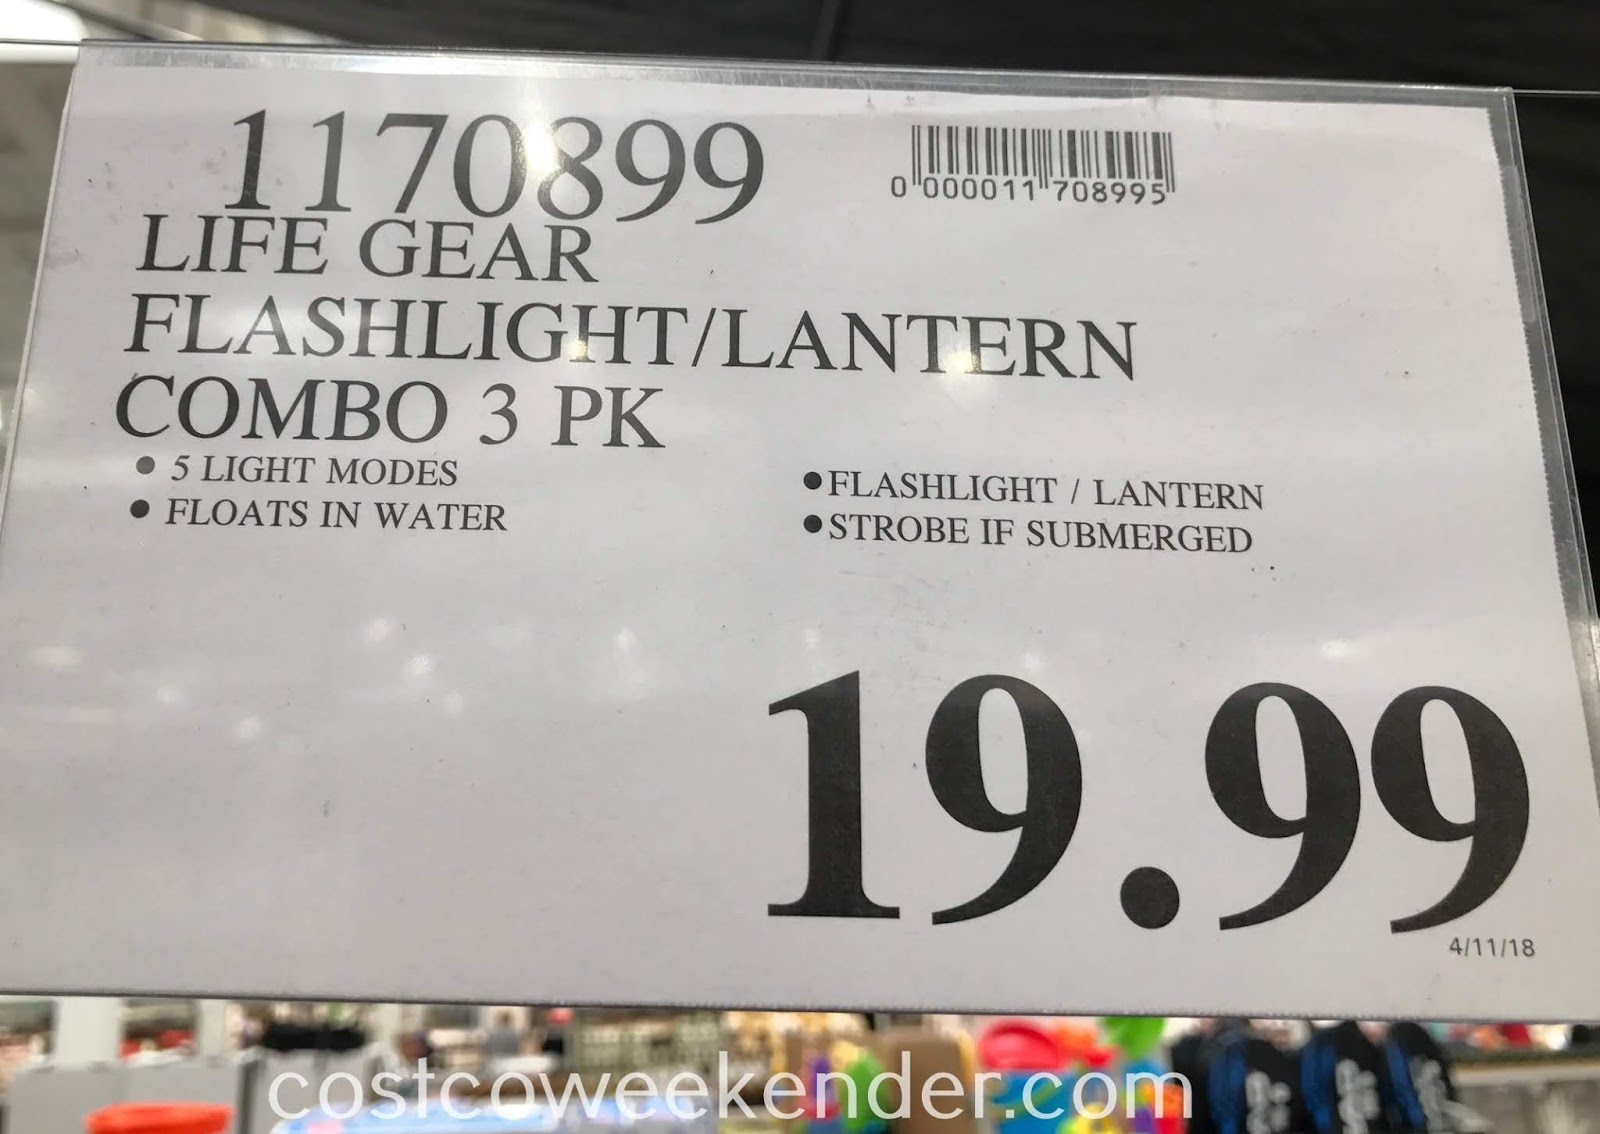 Deal for a 3 pack of Life Gear LED Flashlight and Lantern Combos at Costco